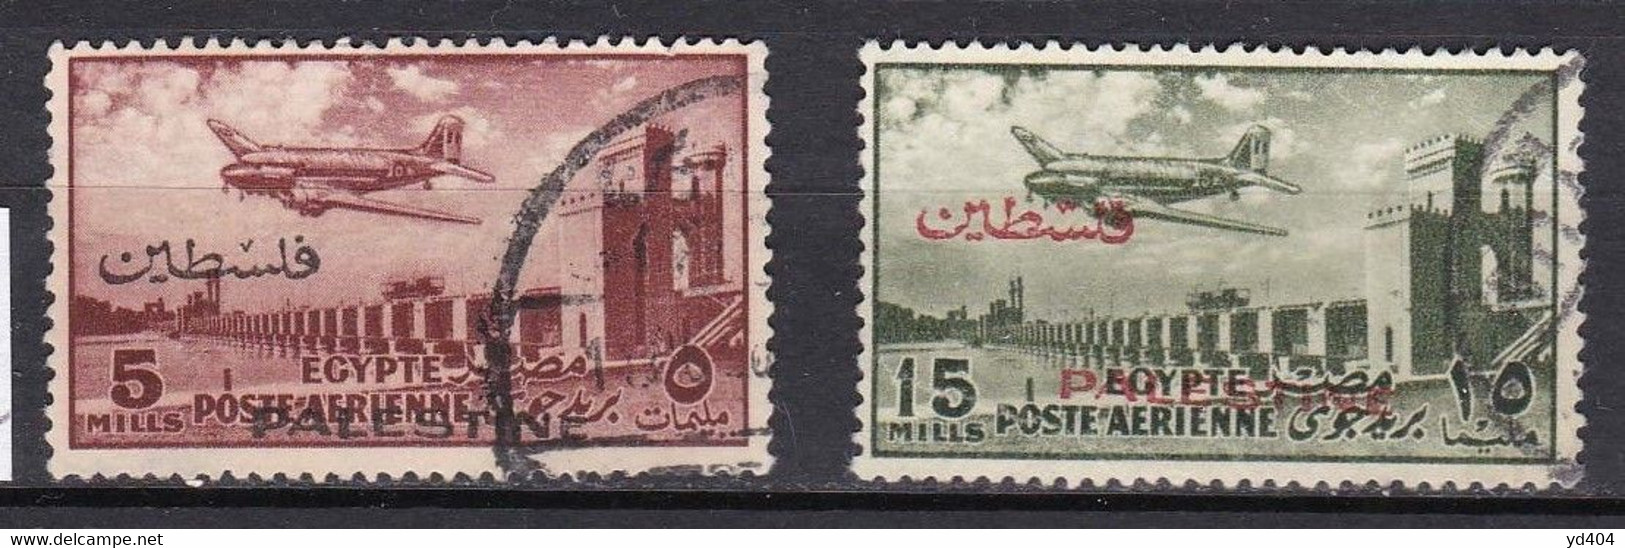 PS557 – PALESTINE – EGYPTIAN OCCUPATION – AIR MAIL - 1955 – DC-3 OVER DELTA DAM - MI # 88/9 USED 17 € - Palestine